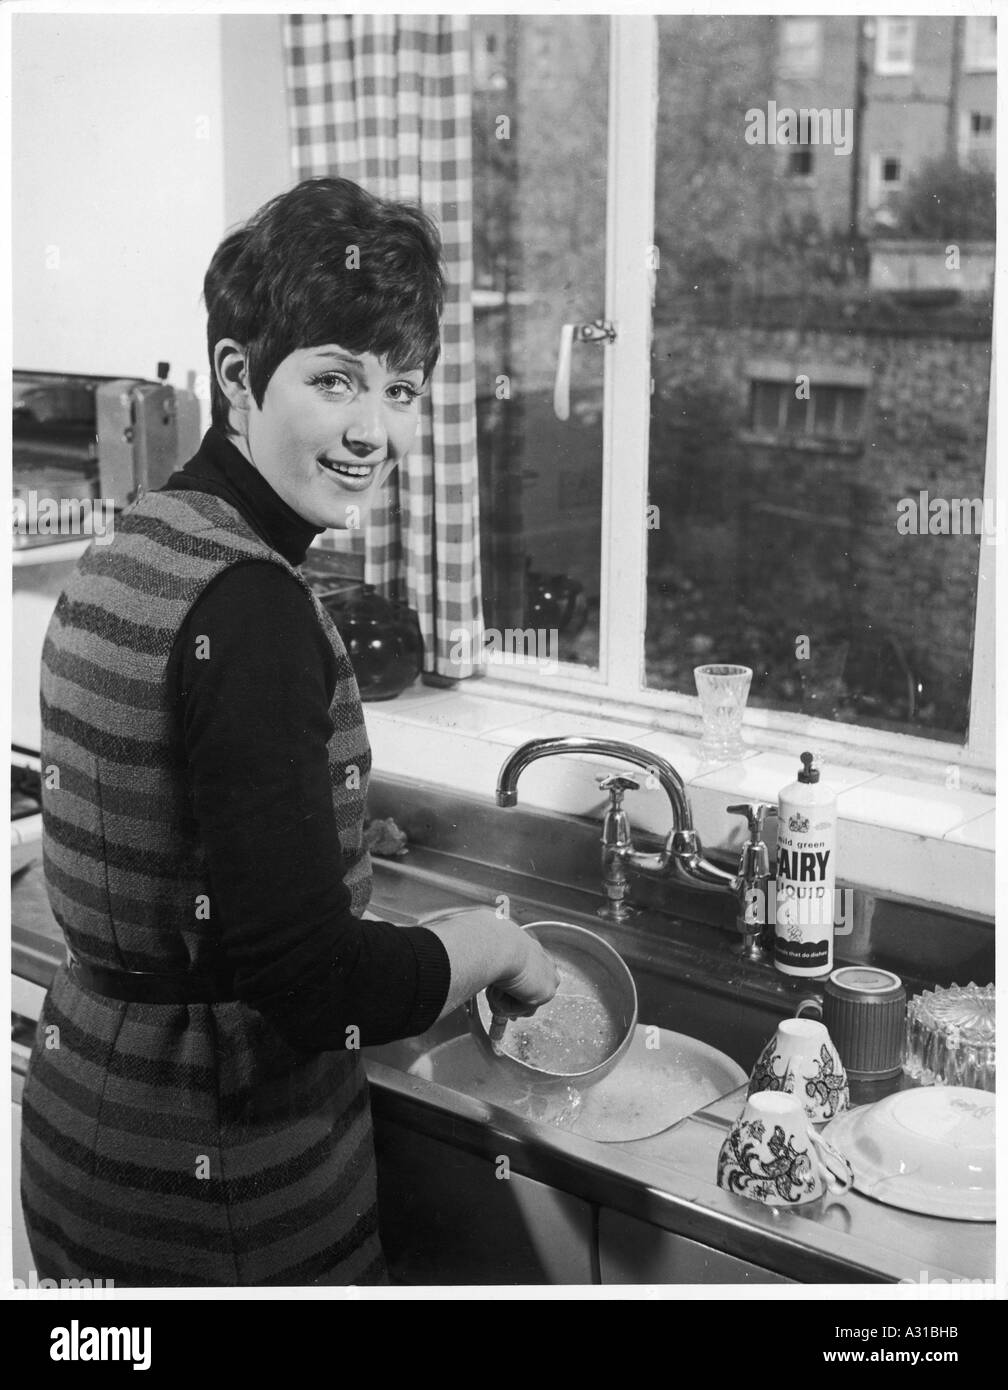 Woman Washing Up 1960 Photo Stock